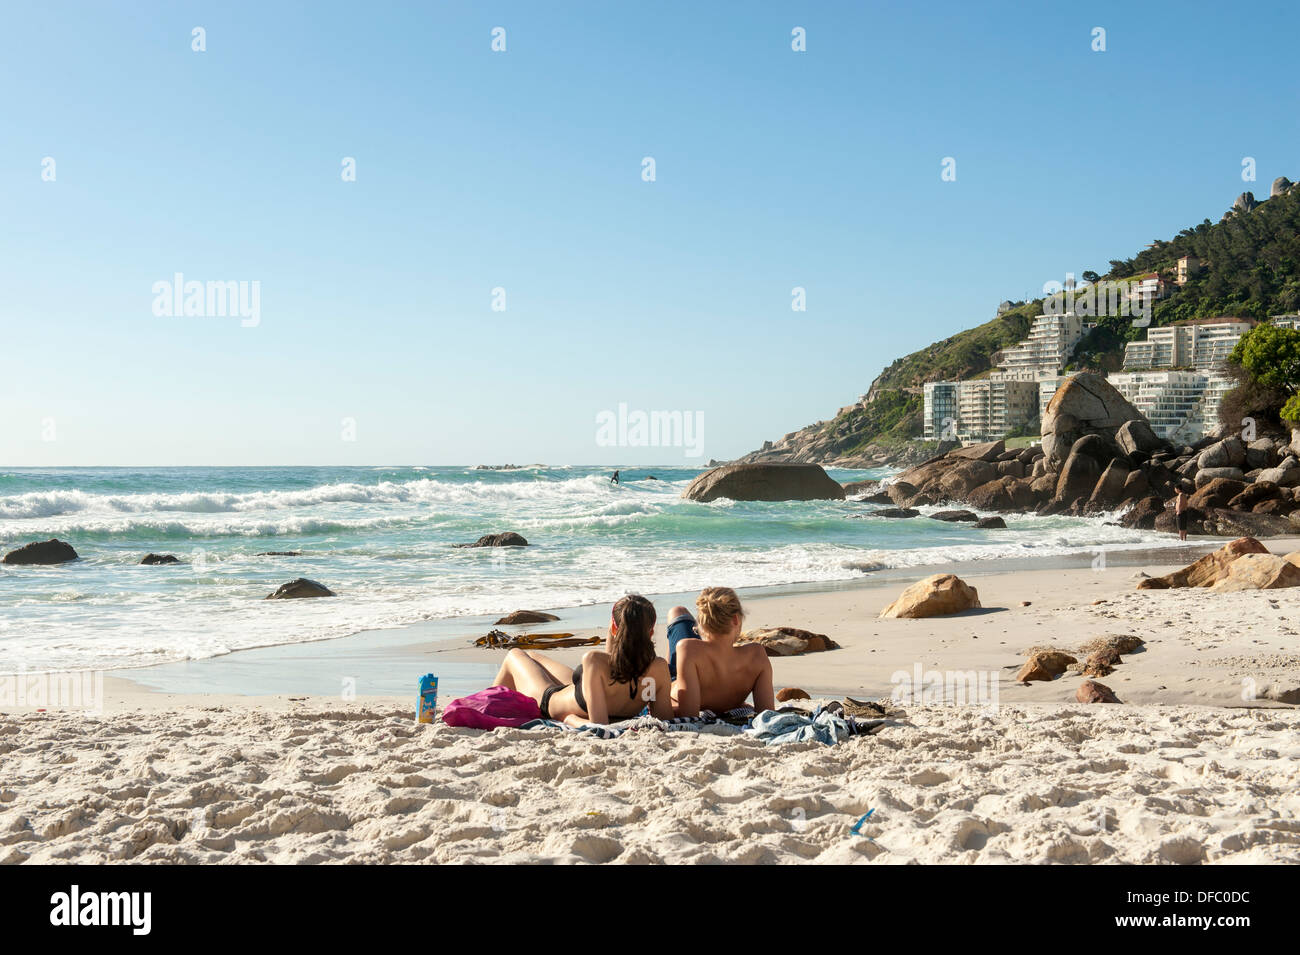 A couple relaxing on Clifton beach, Cape Town, South Africa - Stock Image